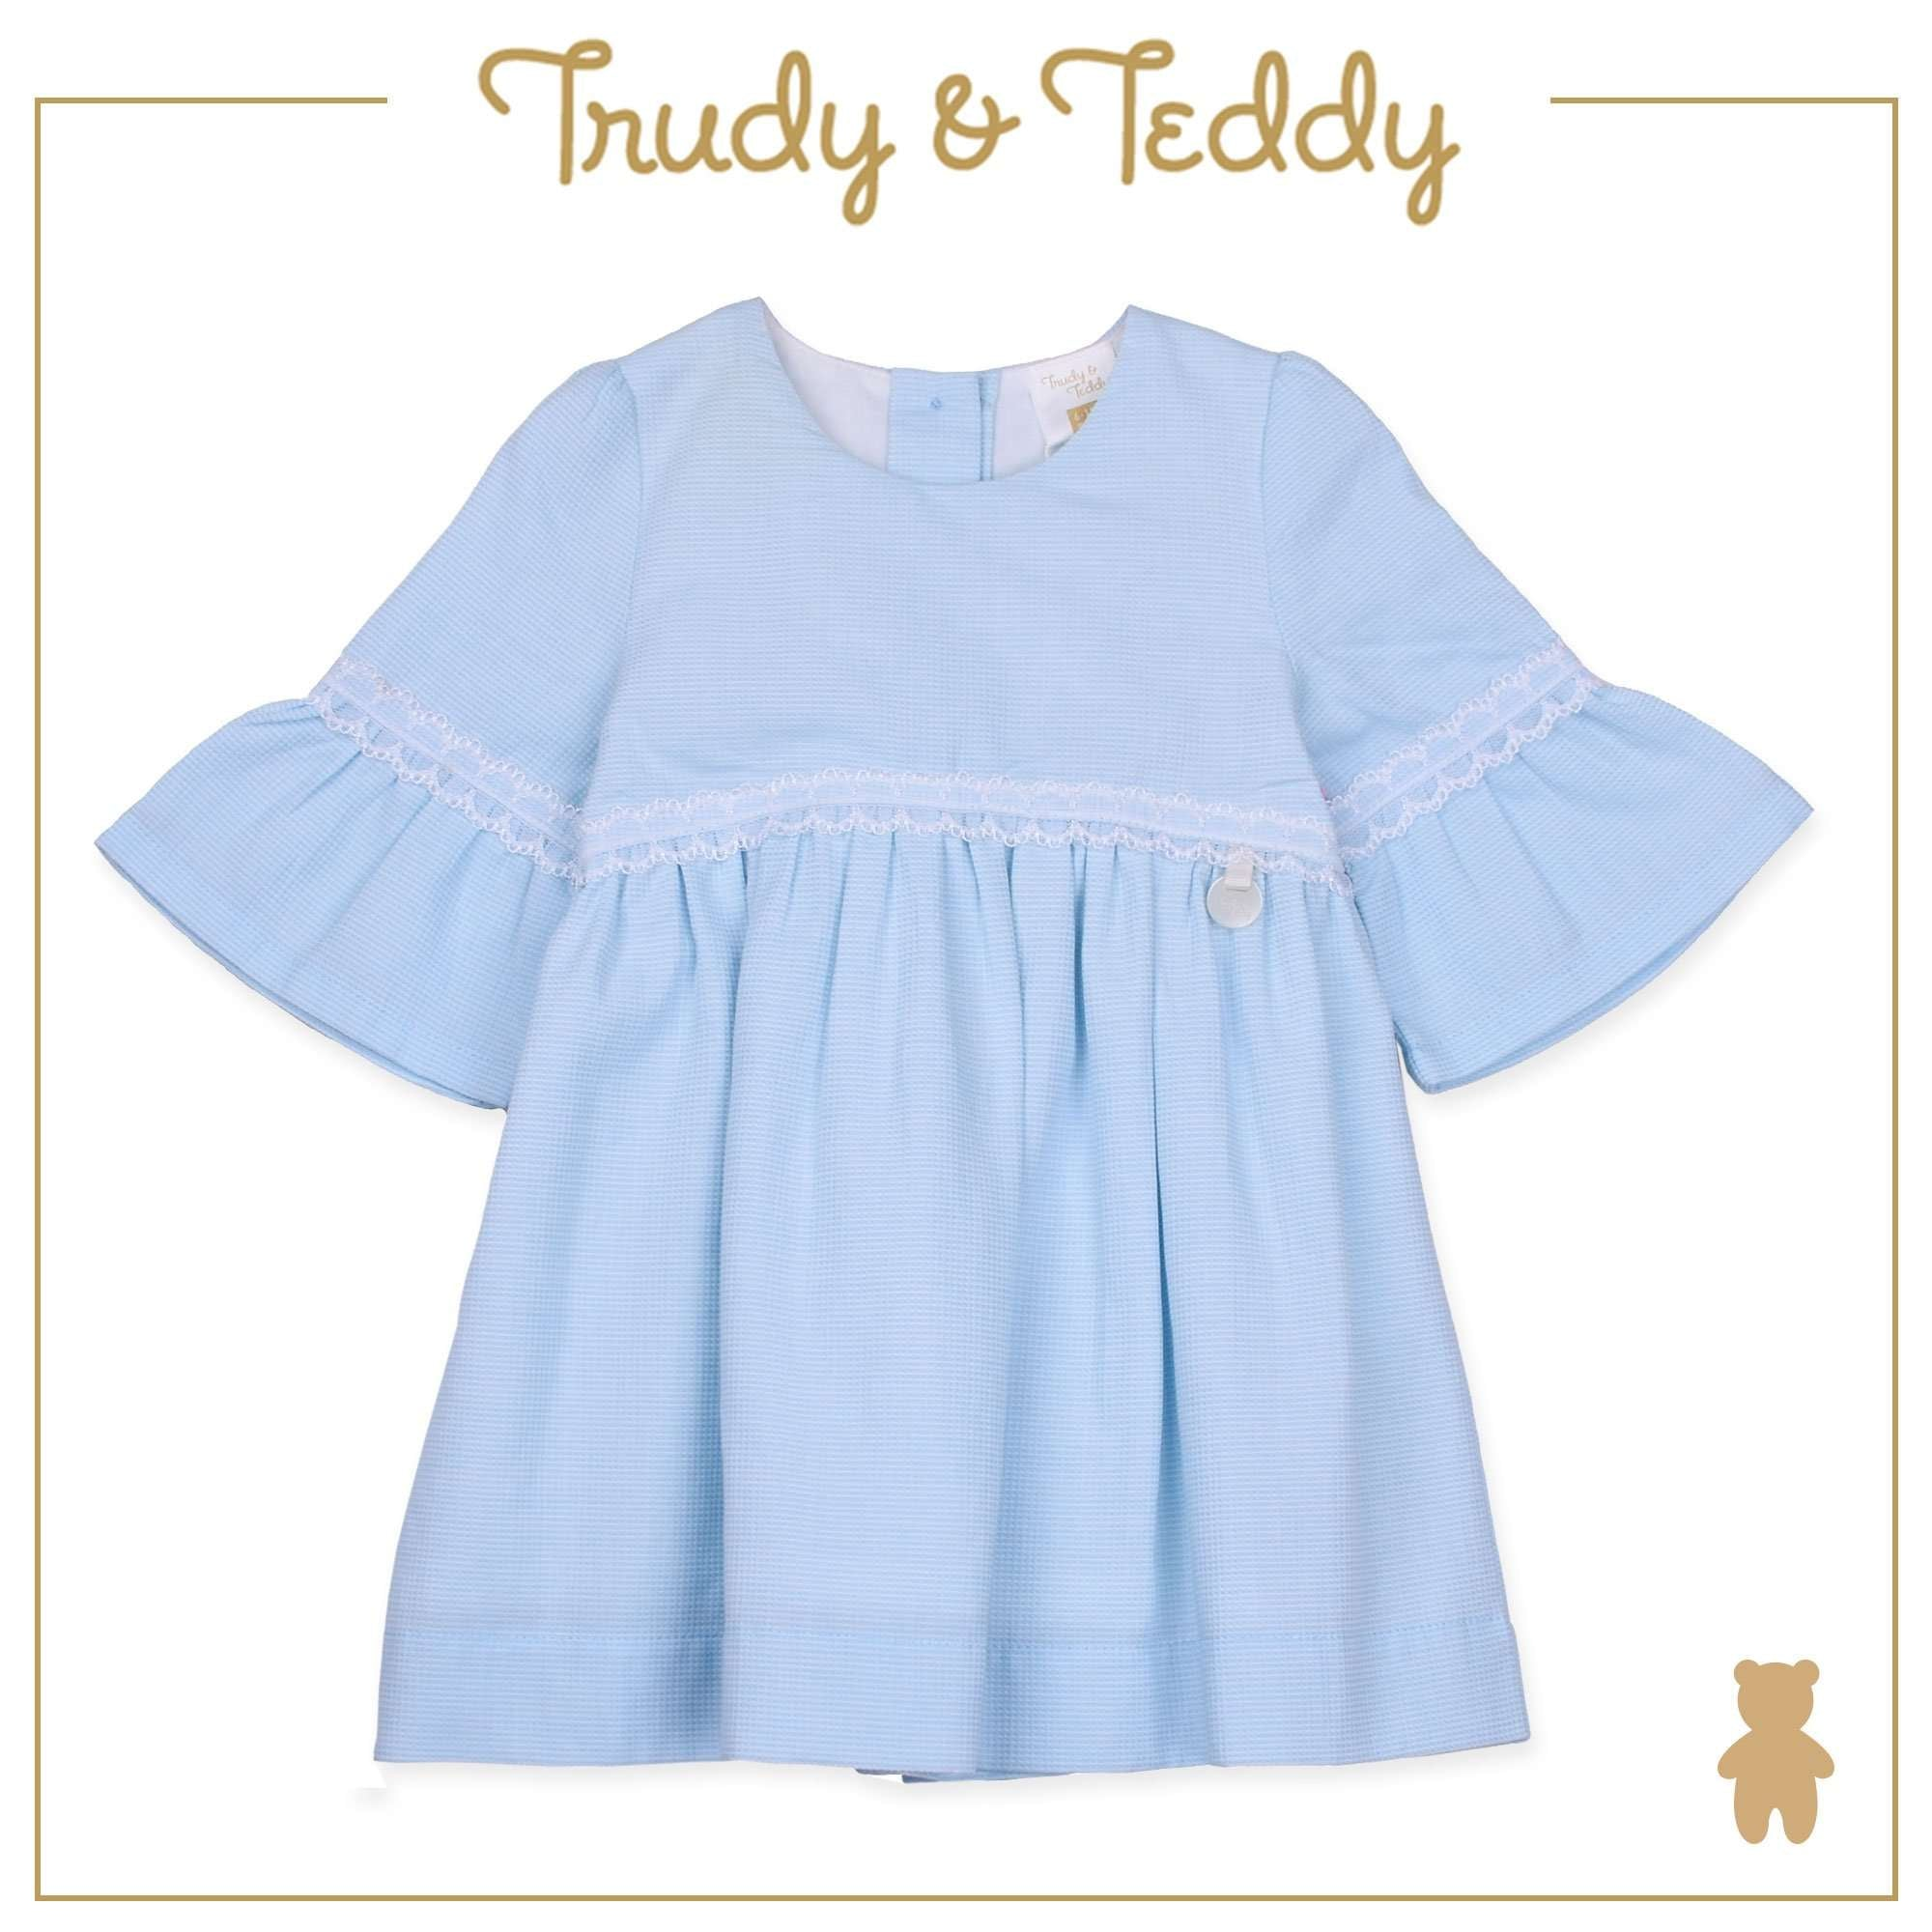 Trudy & Teddy Baby Girl Short Sleeve Dress - Light Blue T924002-3102-L1 : Buy Trudy & Teddy online at CMG.MY